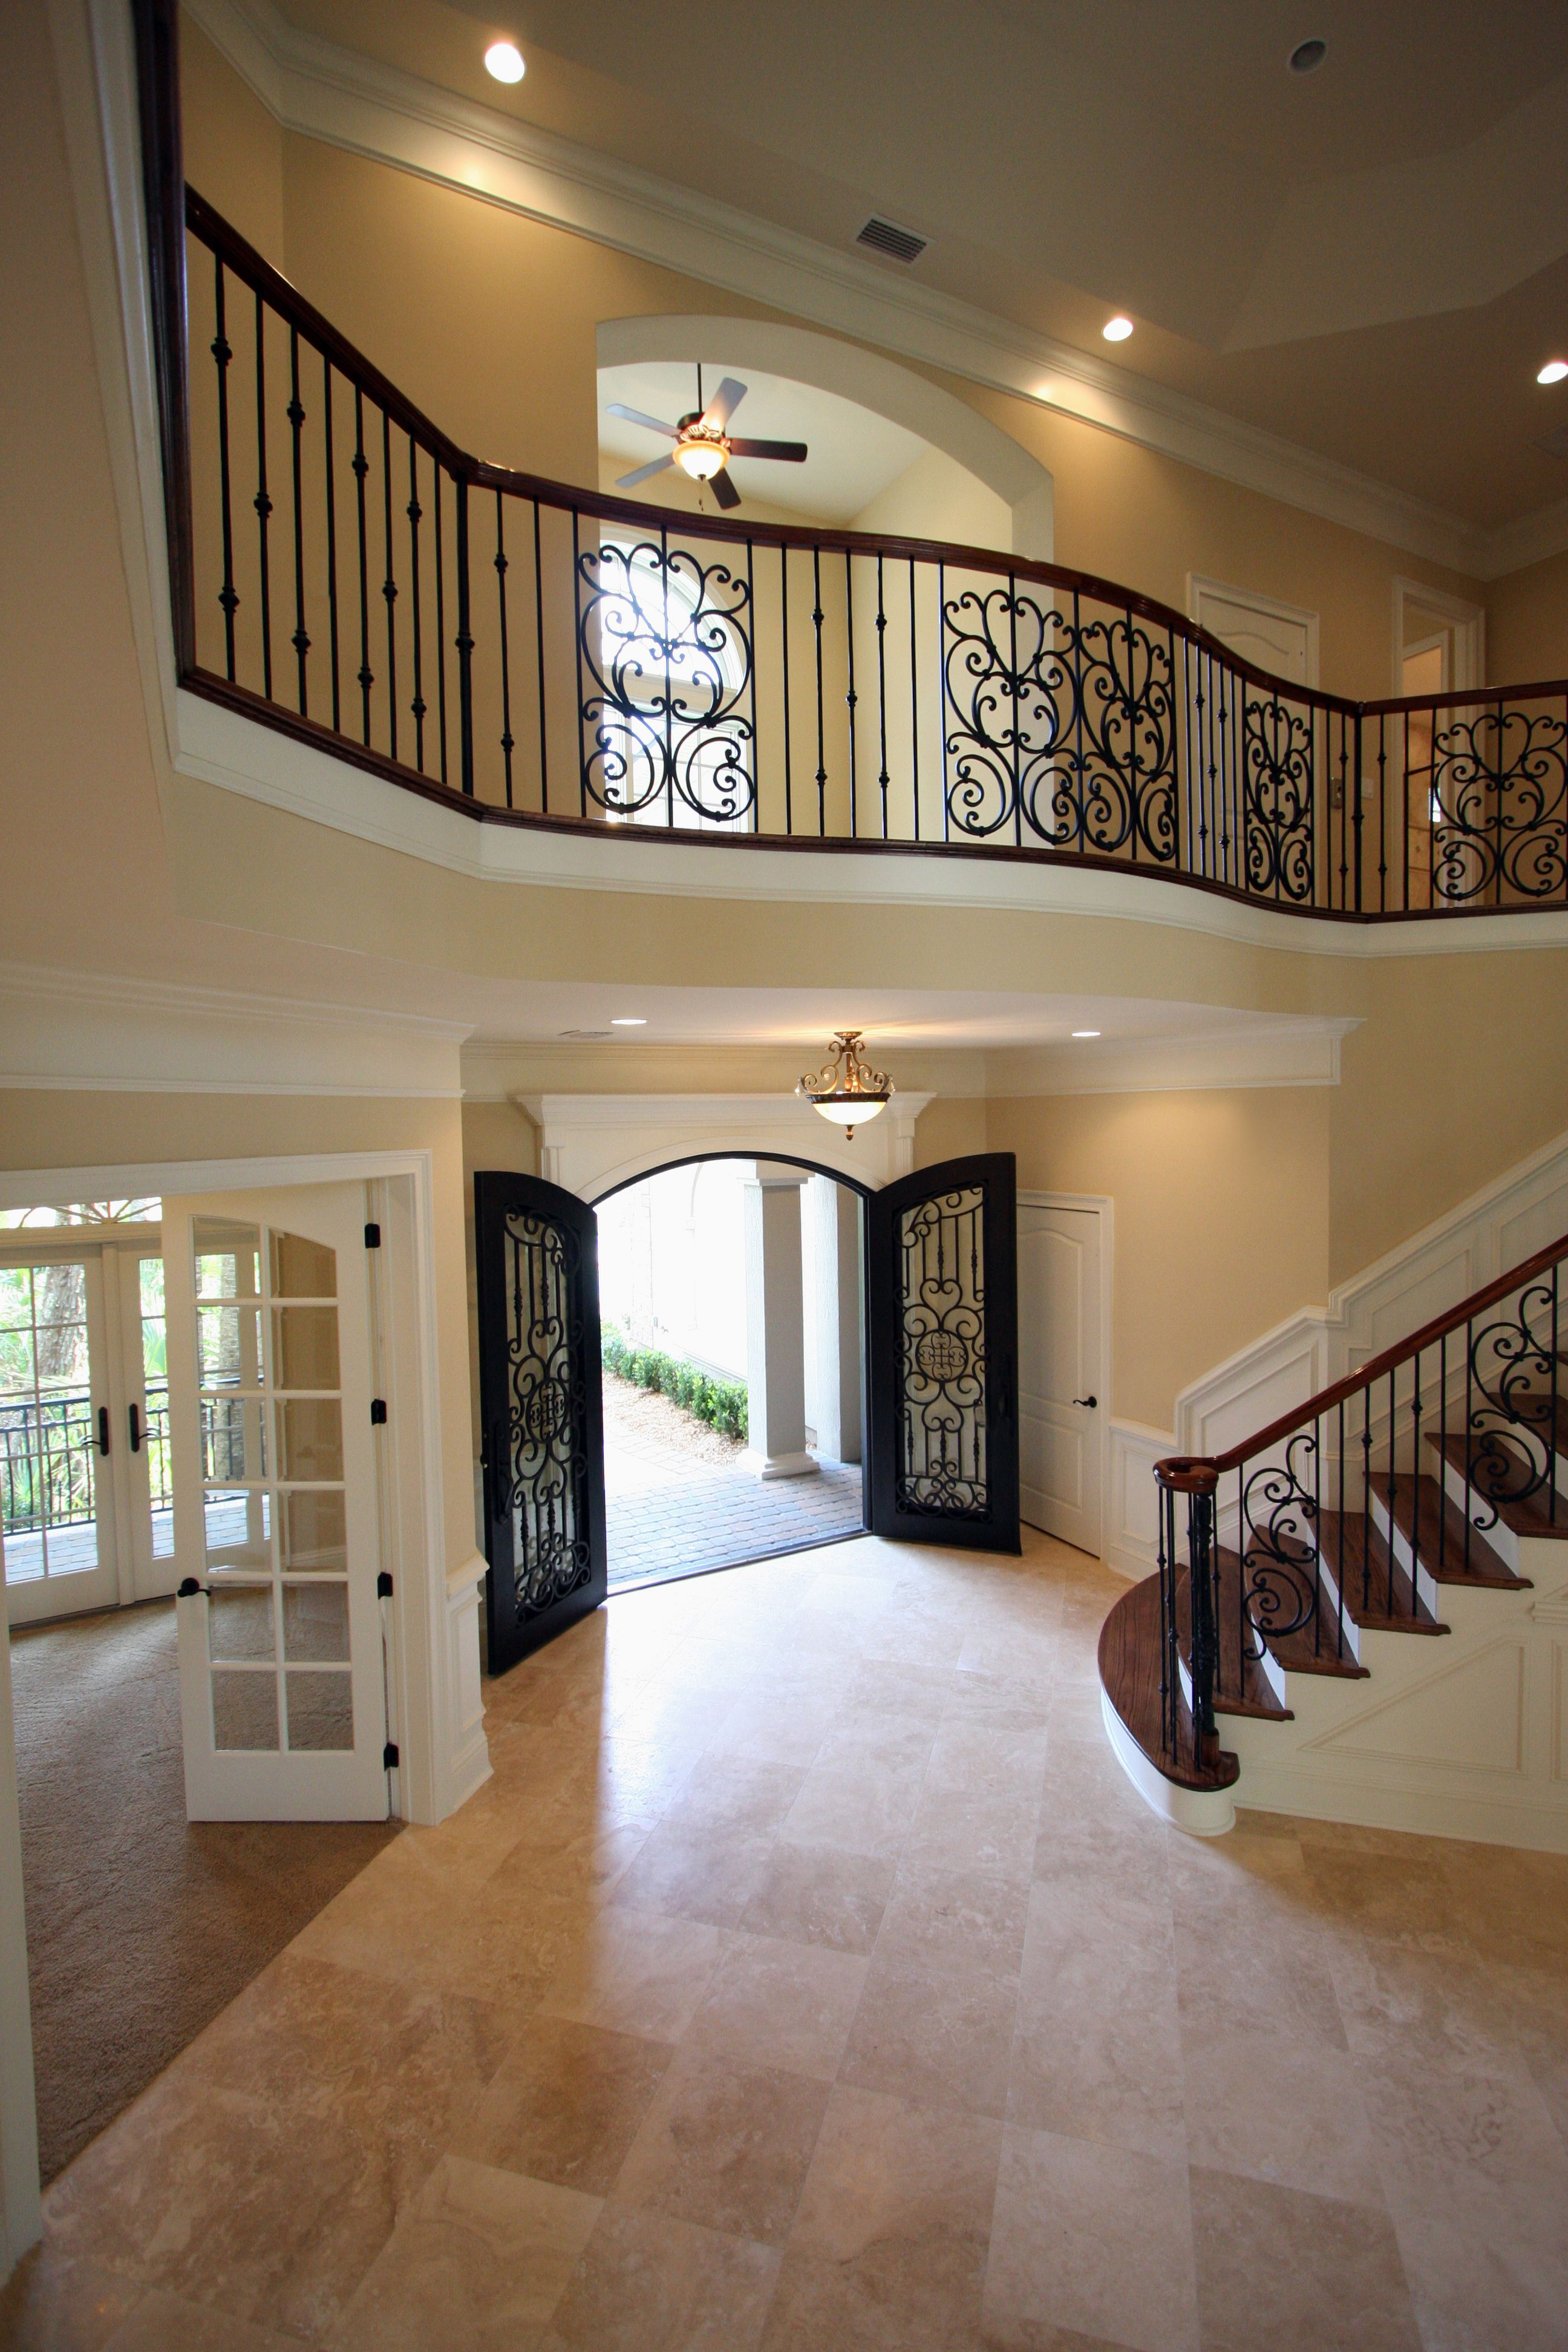 Amazing Open Foyer With Beautiful Stair Case And Balcony, Black Iron Scrollwork, Accent Lighting